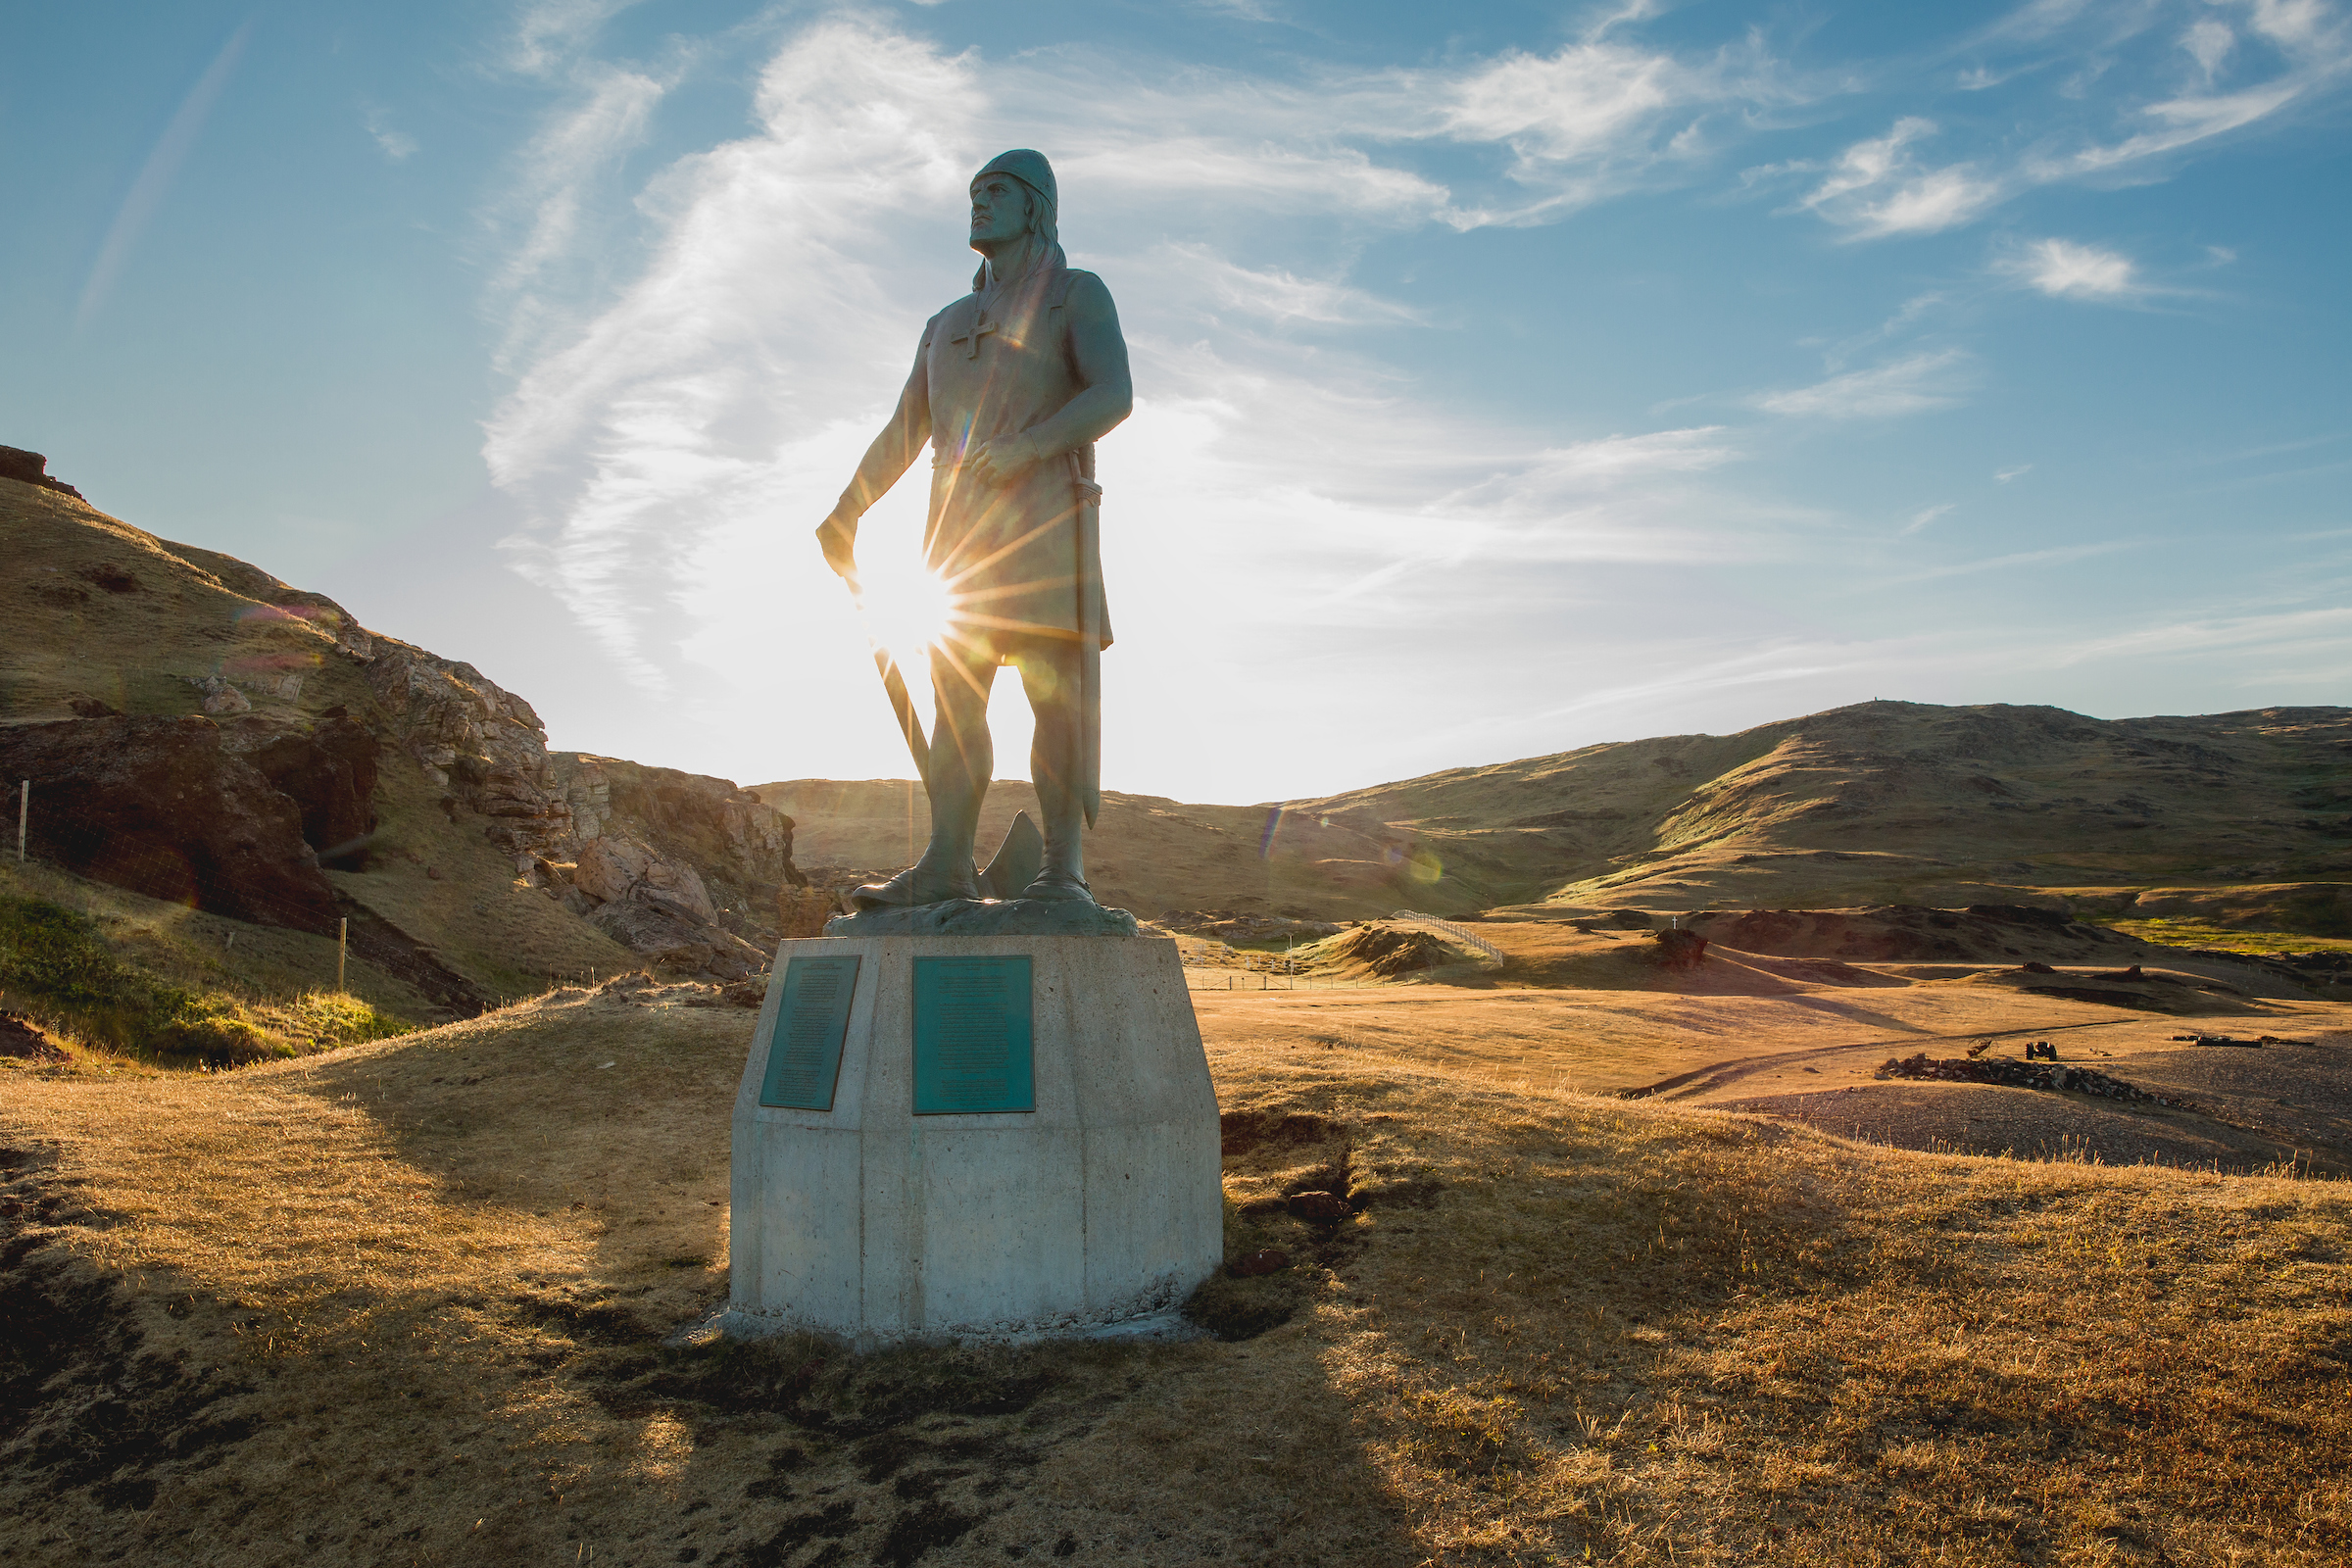 The statue of Leif Ericson, son of Erik the Red in Qassiarsuk in South Greenland